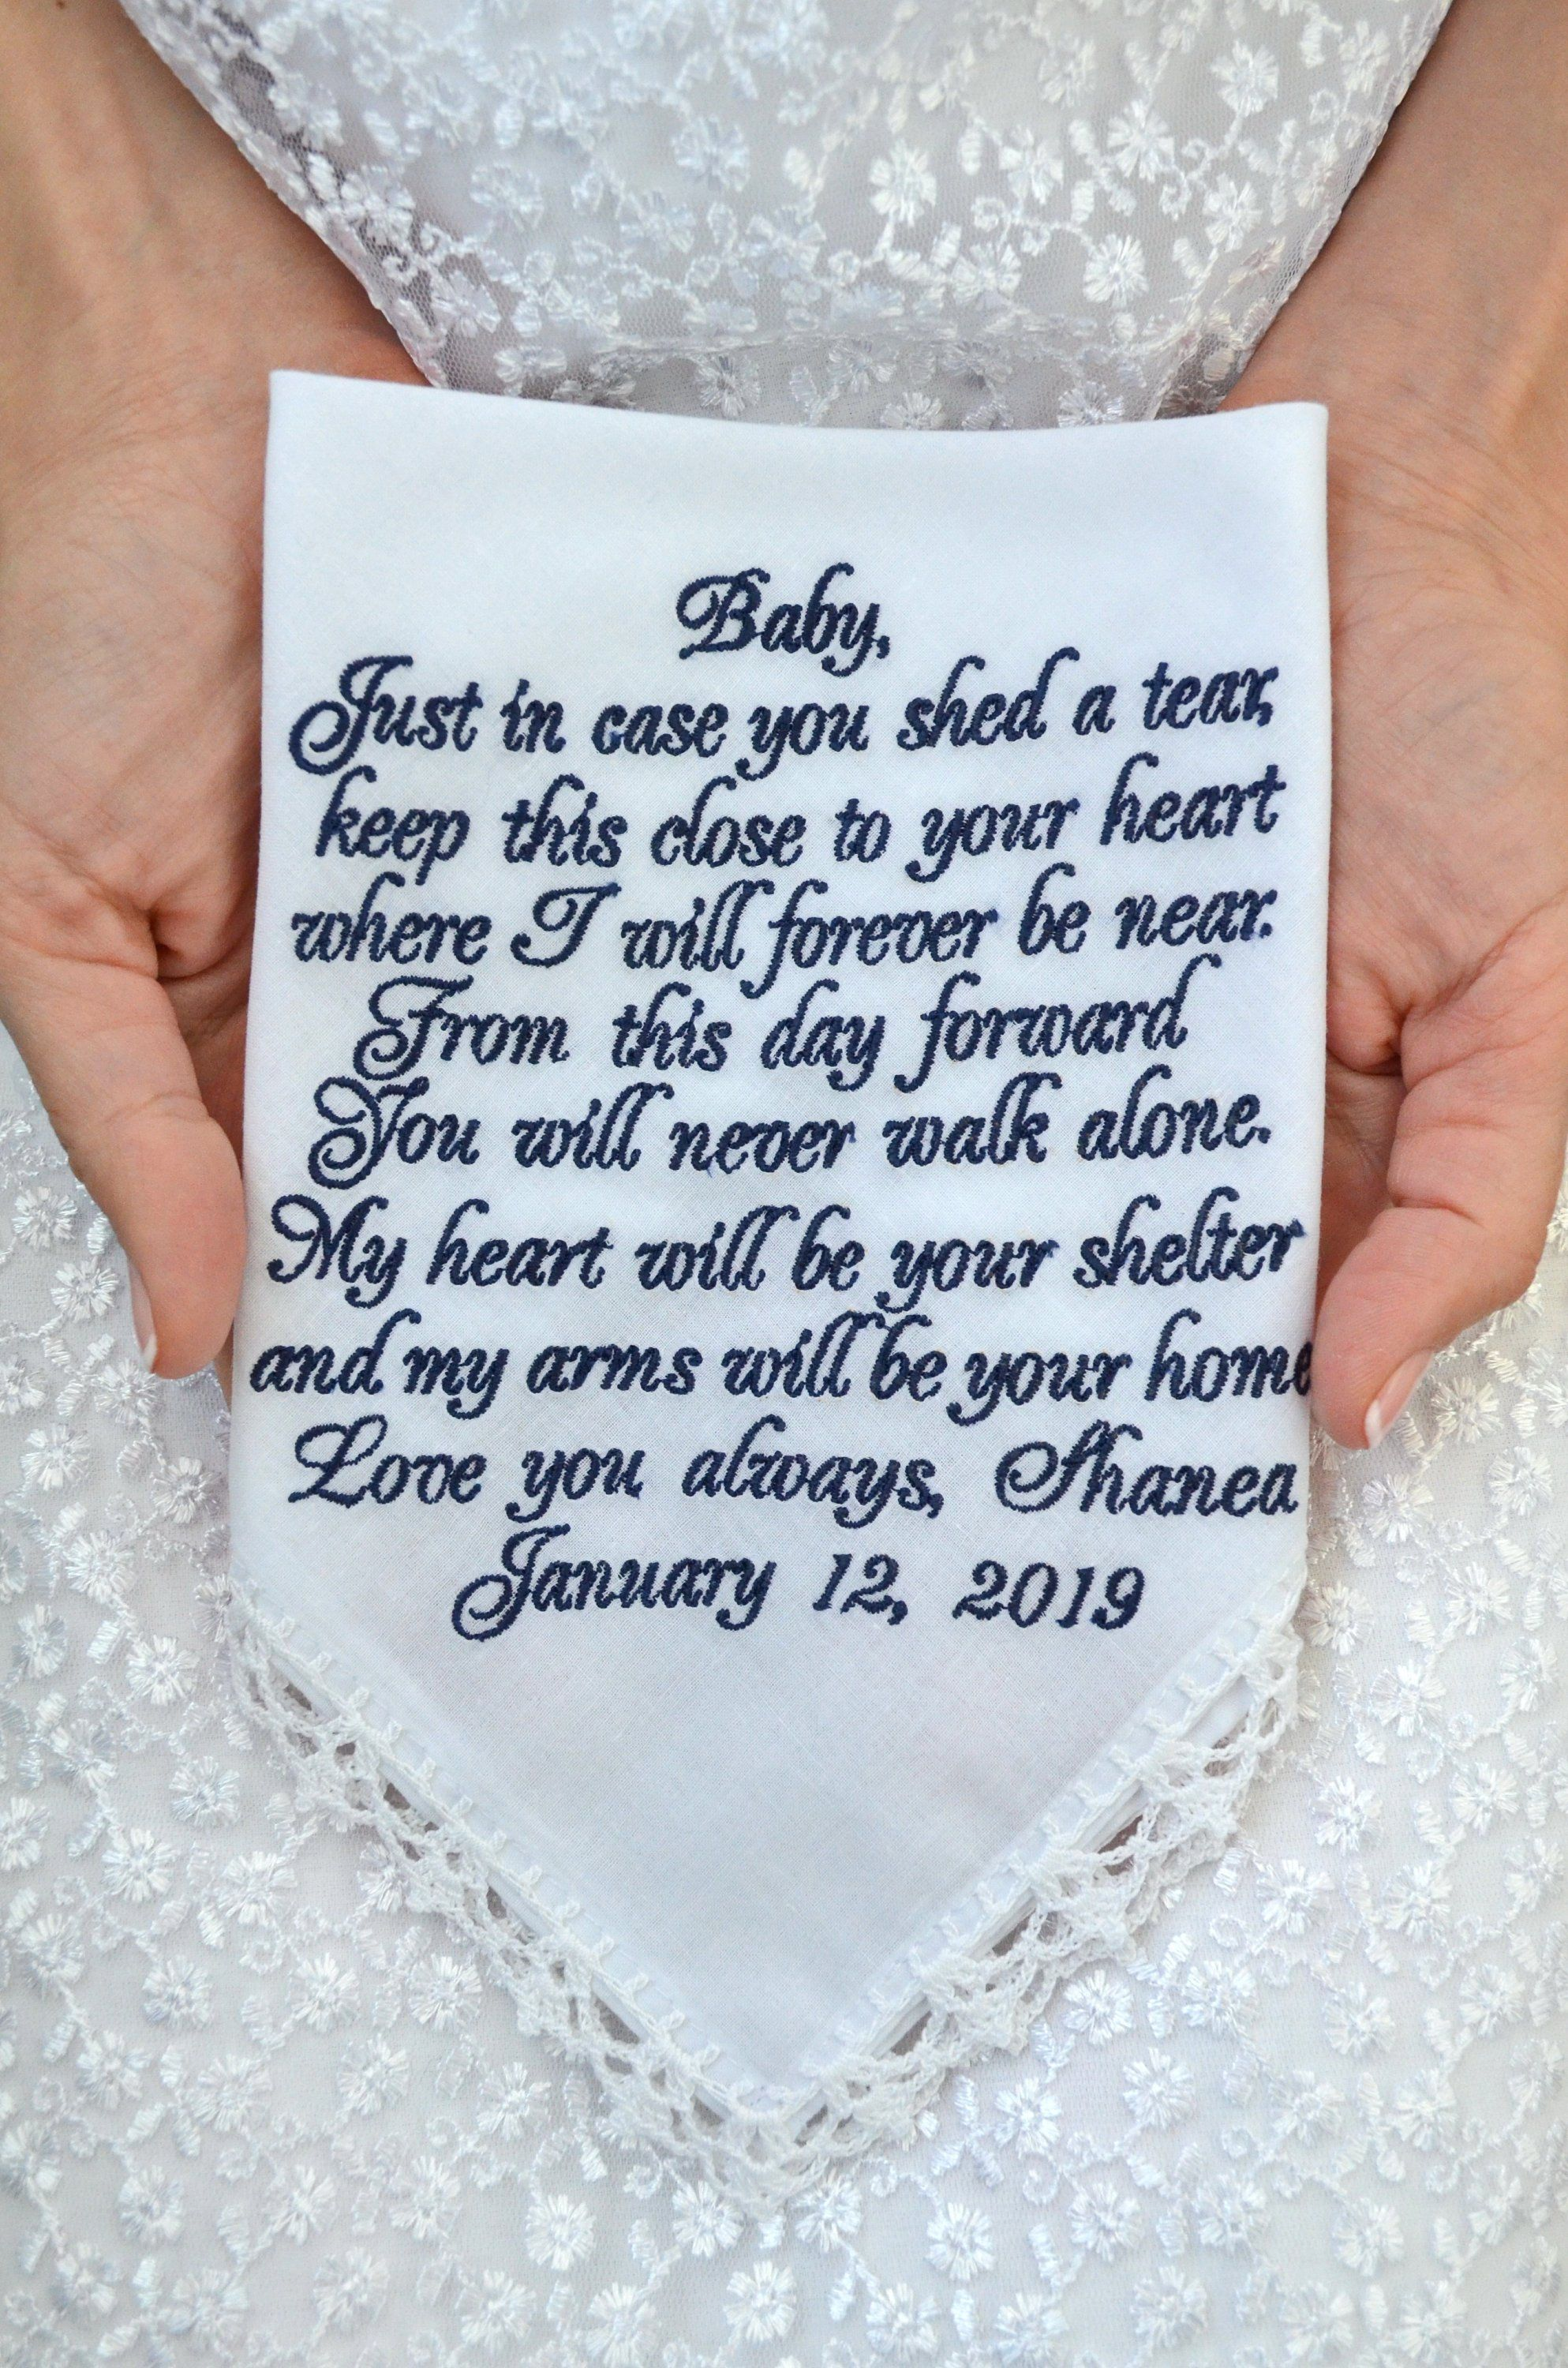 Groom Gifts From Bride Grooms Gift Handkerchief Wedding Vows Etsy Wedding Gifts For Bride Wedding Gifts For Groom Bride And Groom Gifts